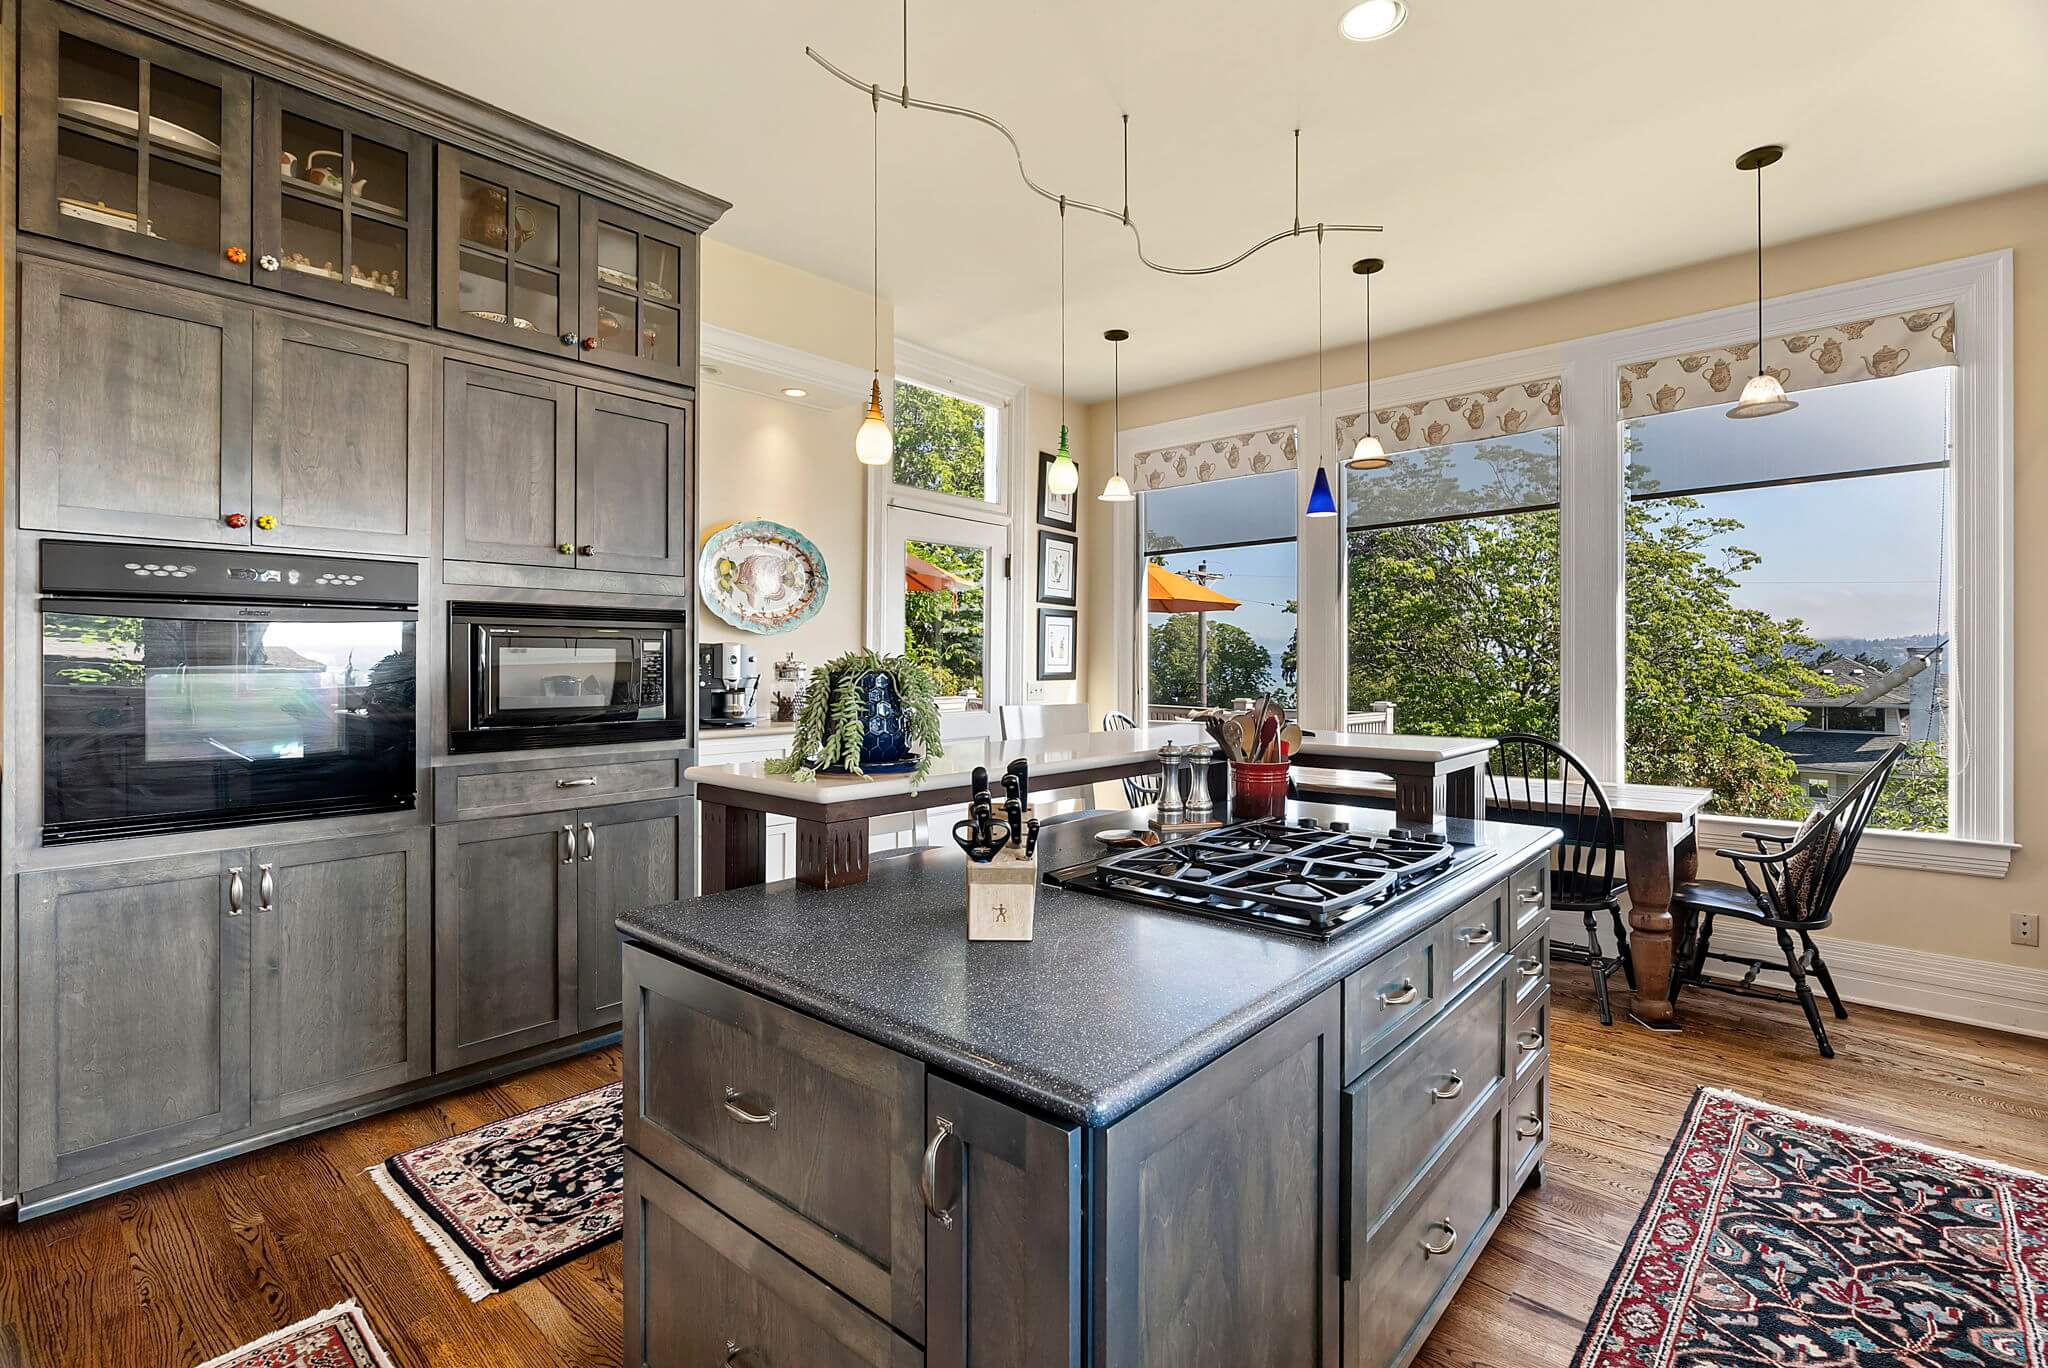 Kitchen features a central island and ample storage